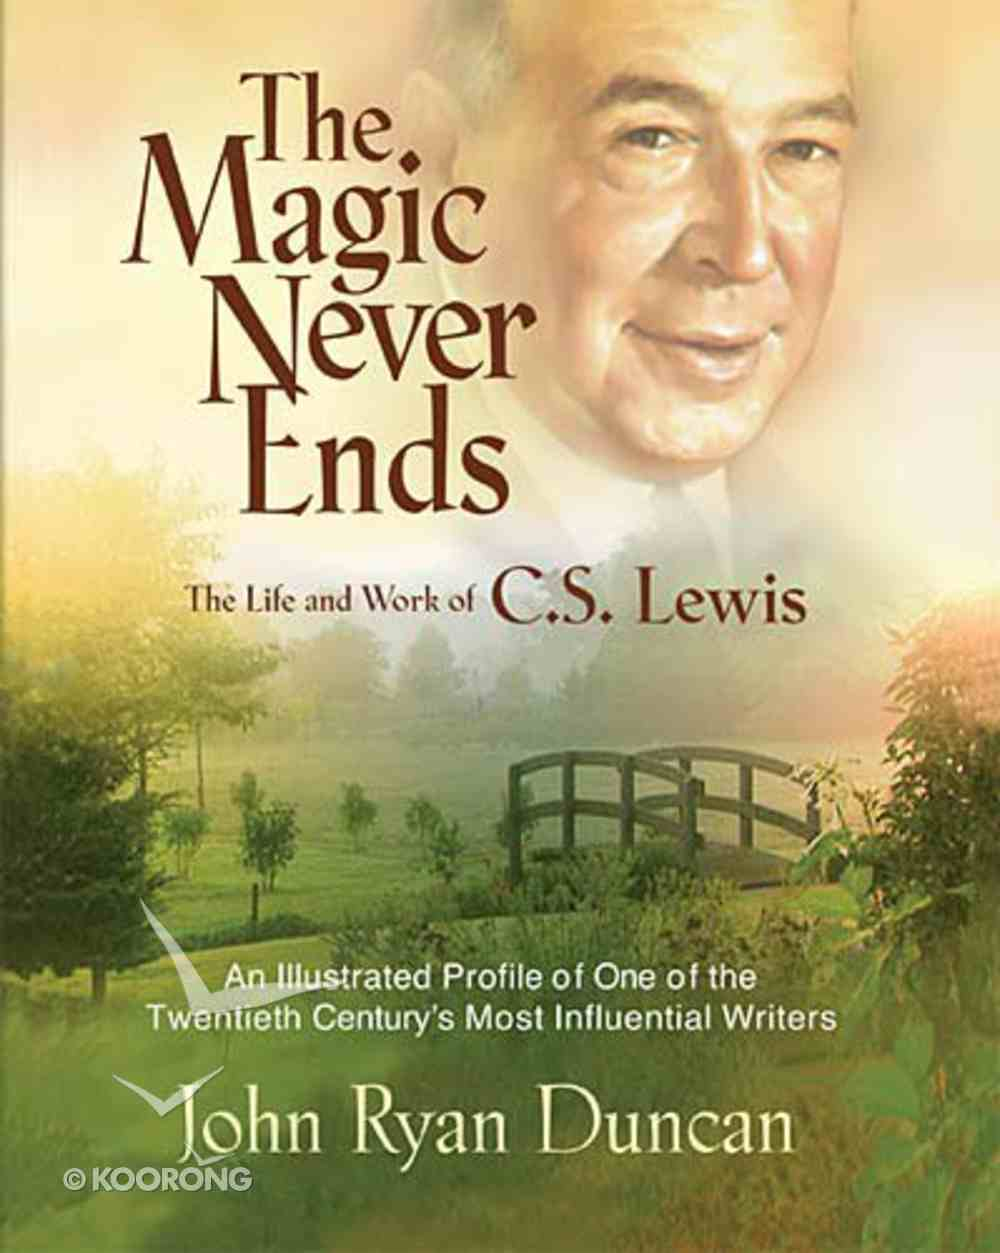 The Magic Never Ends (Student's Guide) Paperback